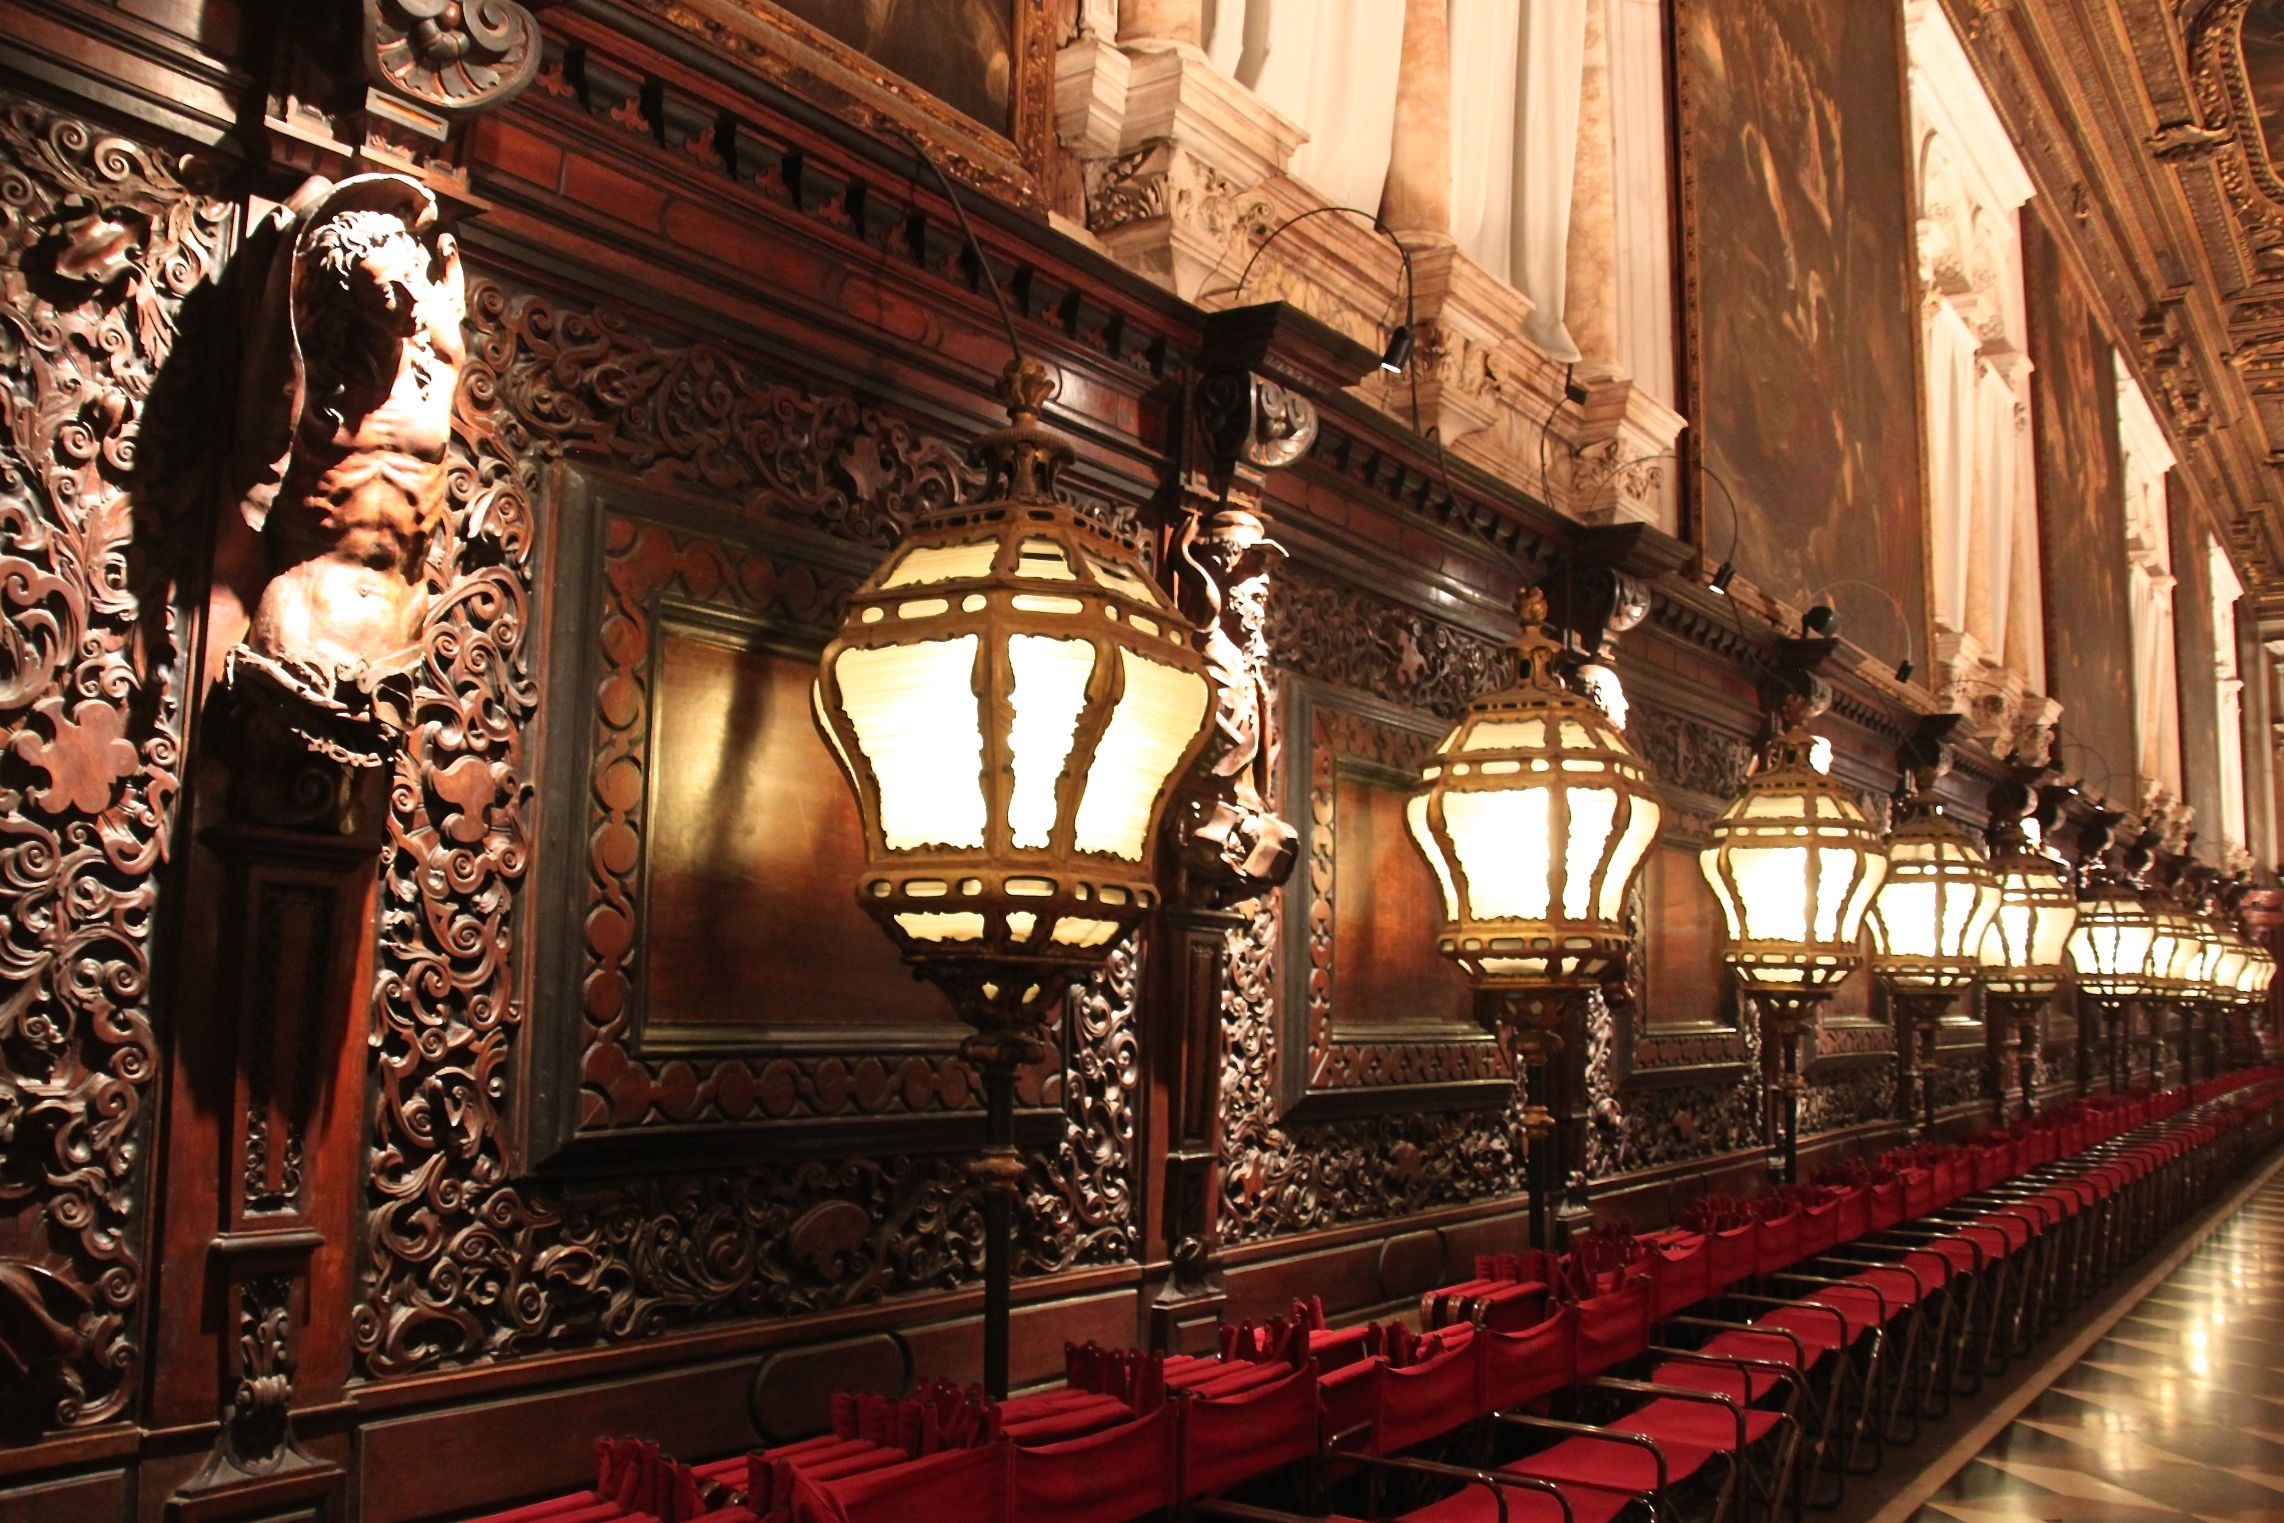 The Scuola Grande di San Rocco is ornately decorated and the main room is softly lit by these huge glass lamps